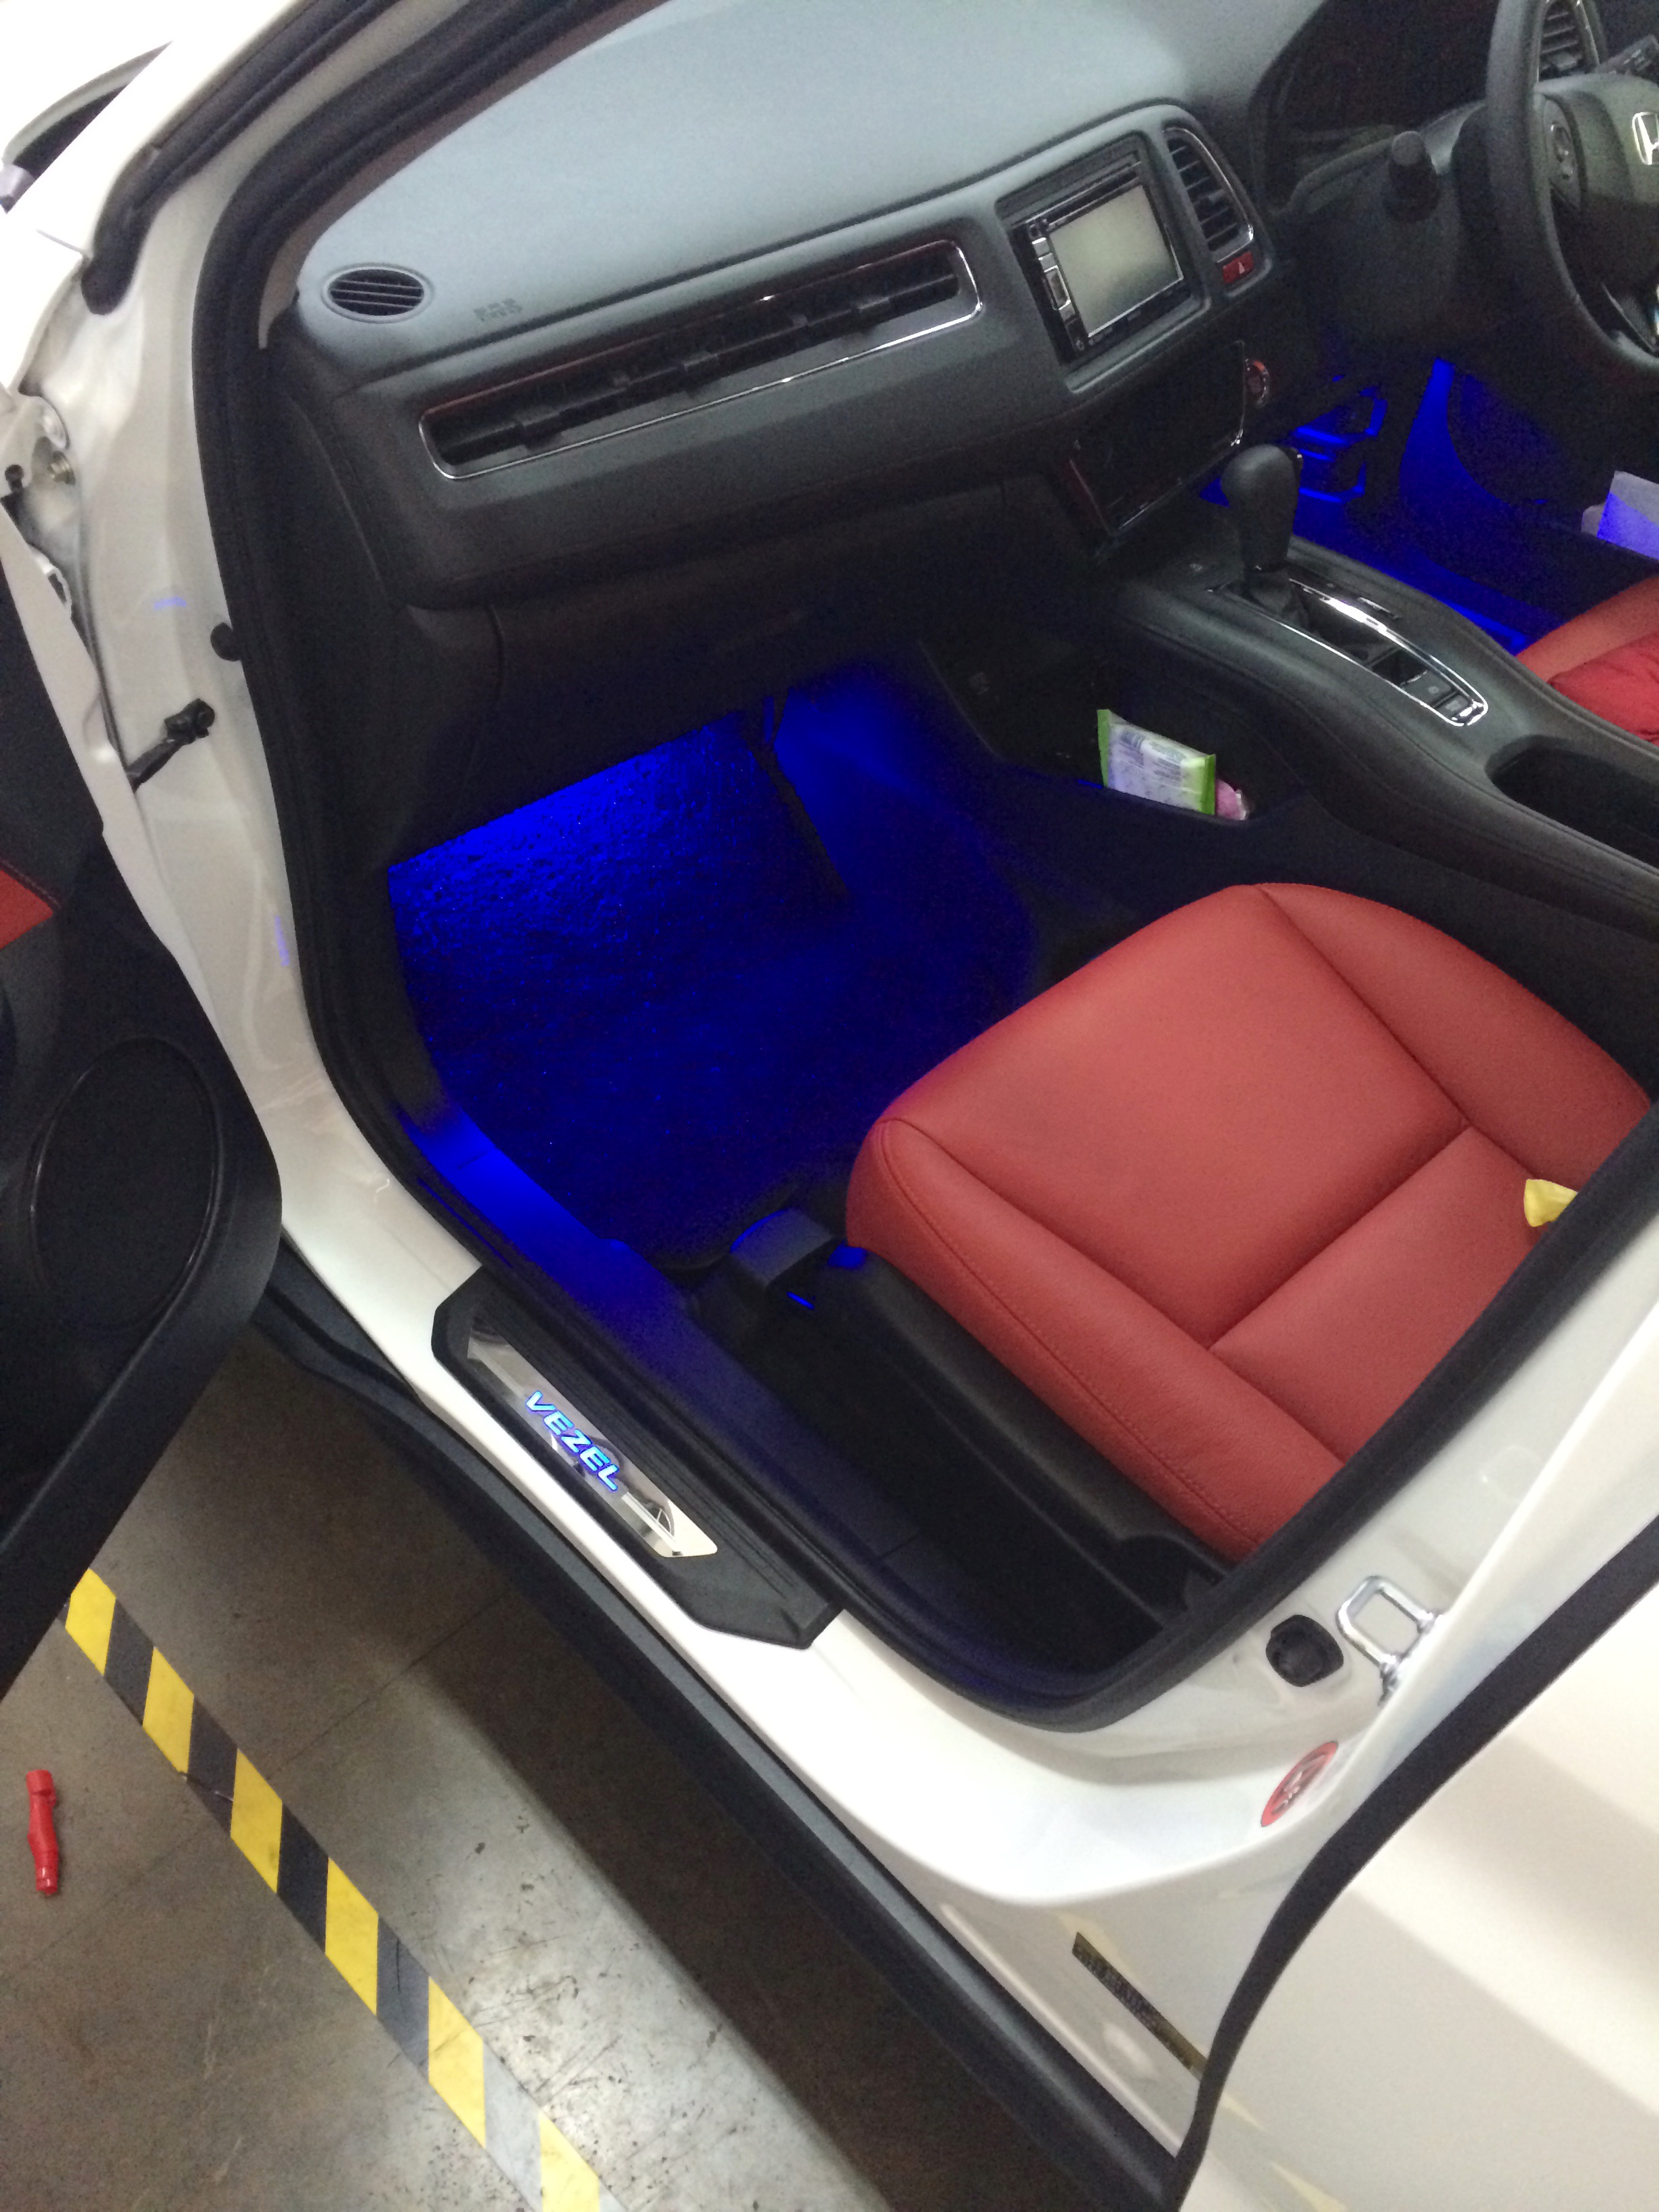 Car Repair Insurance >> LED Scuff Plate (Blue) - $105.00 : Carbon Fibre Sticker Singapore, Carbon Fibre Sticker ...